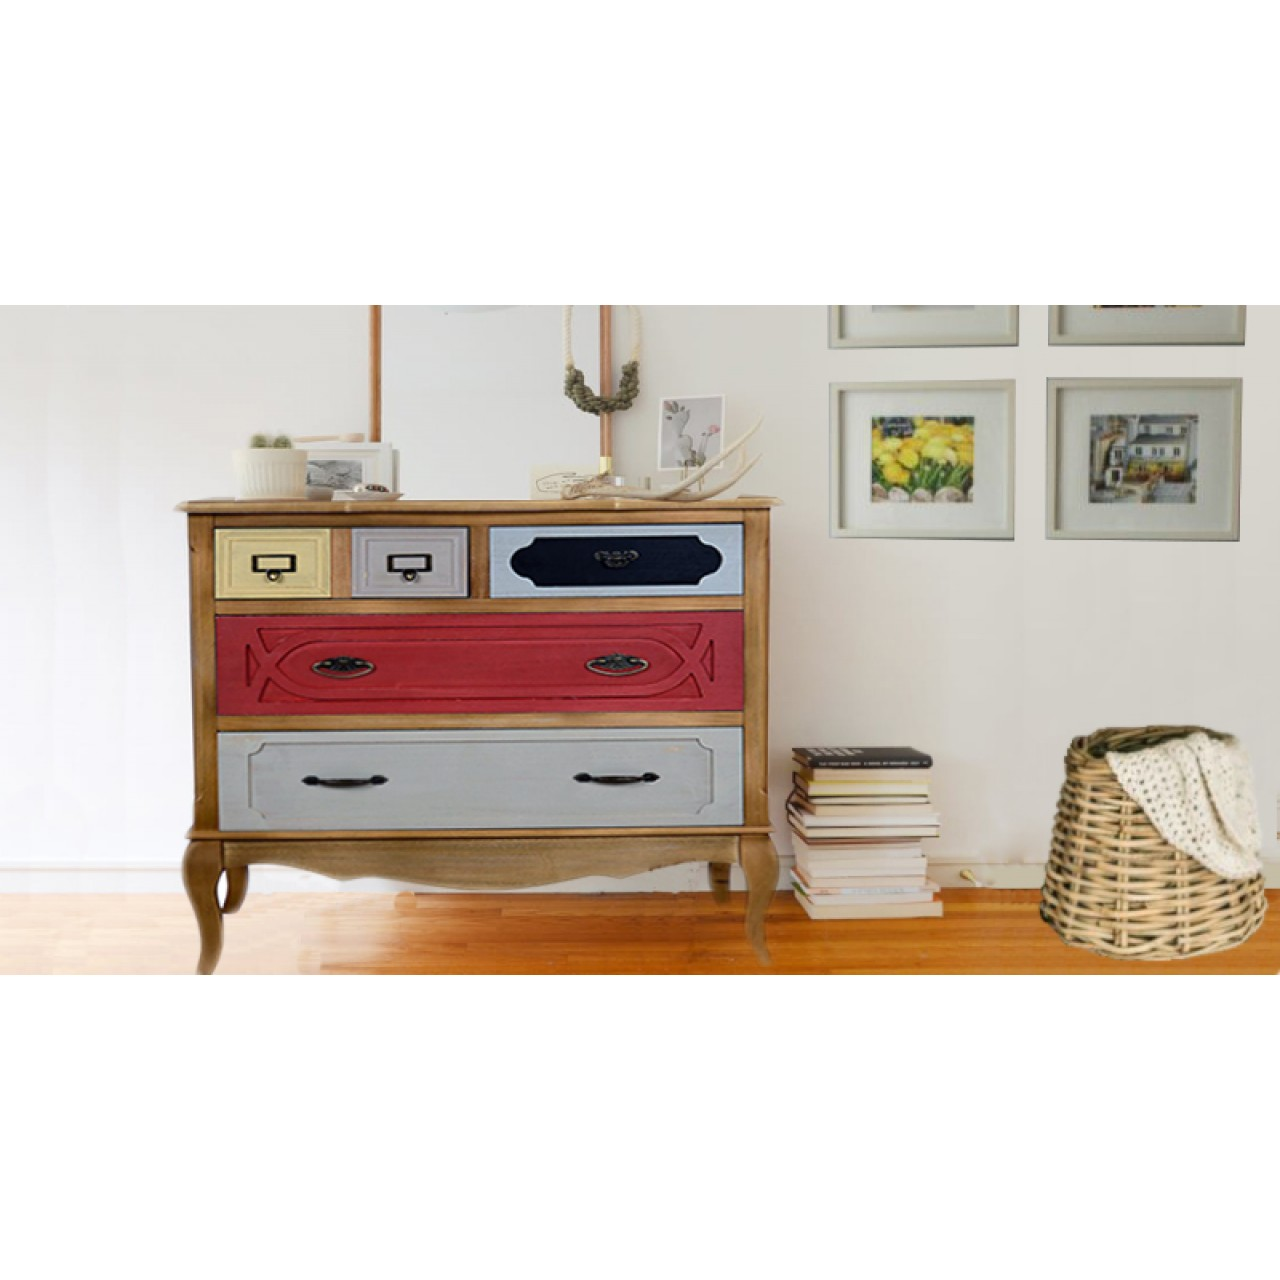 Chest Of Drawers Retro Chic